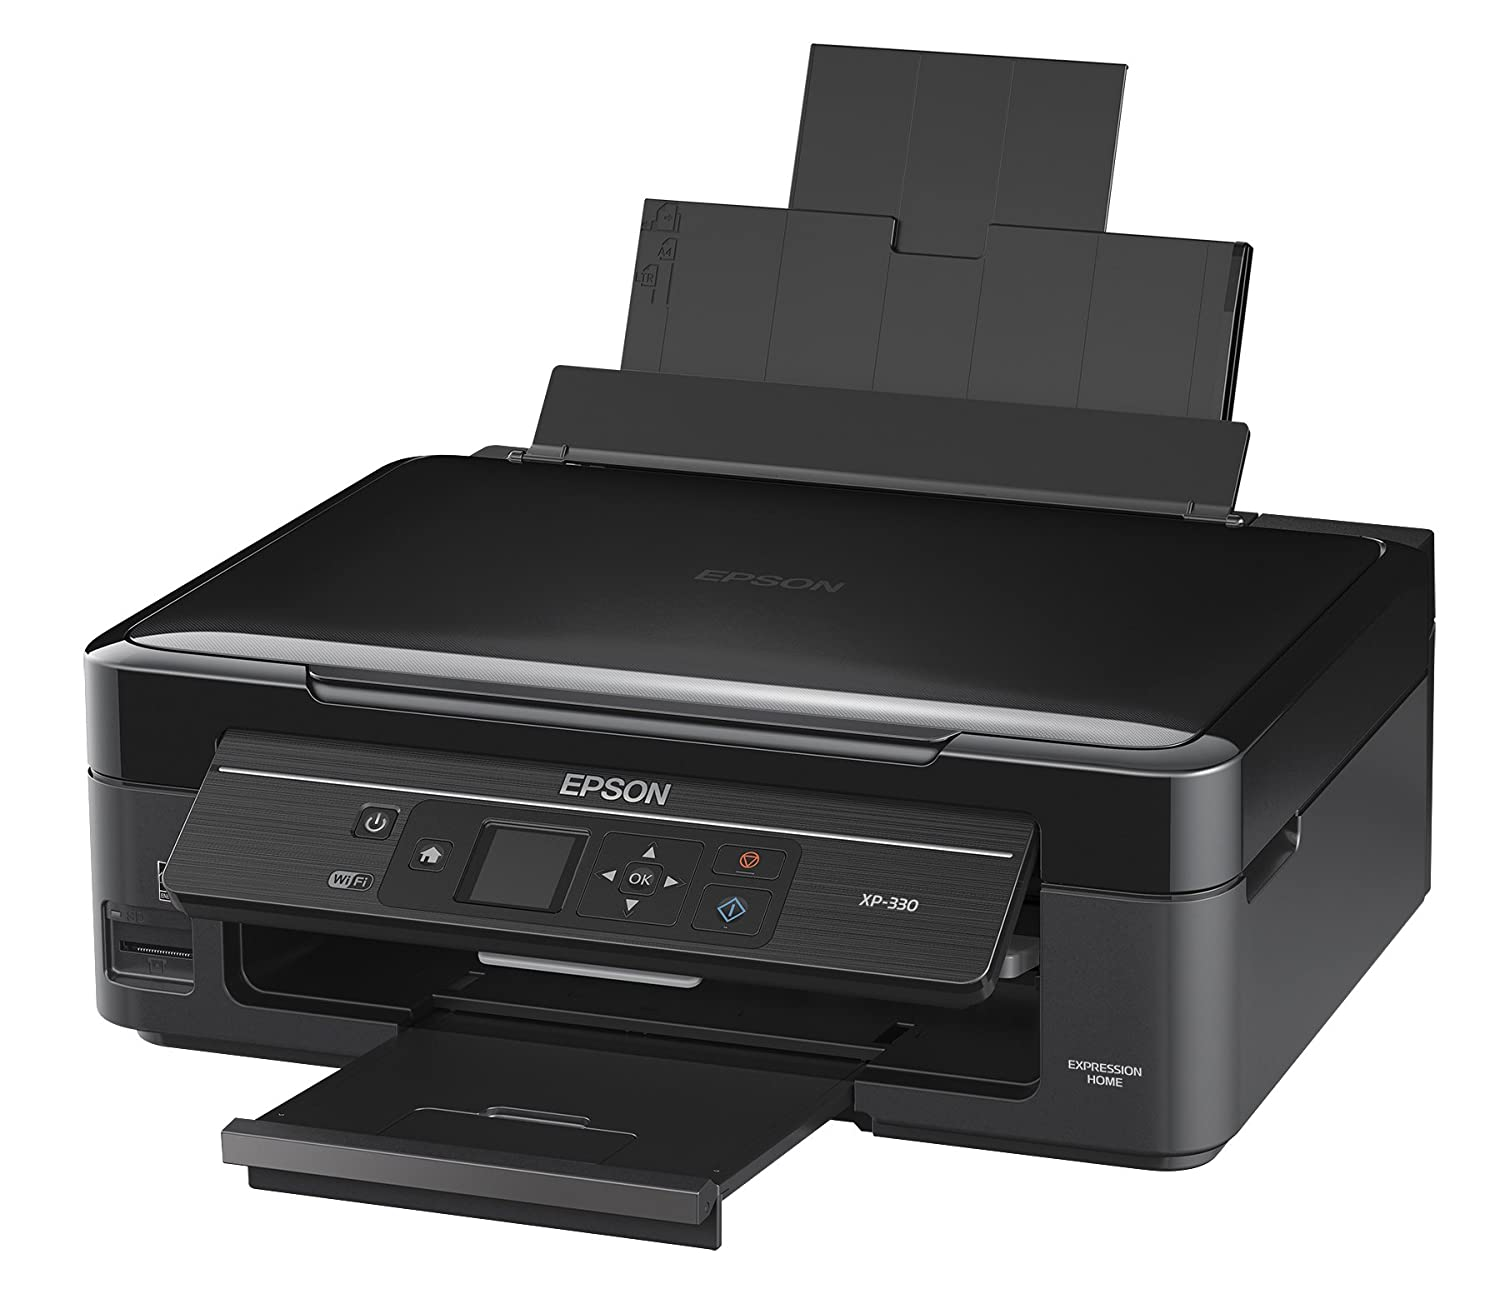 Does anyone know of any good home printers that are relatively cheap to run?